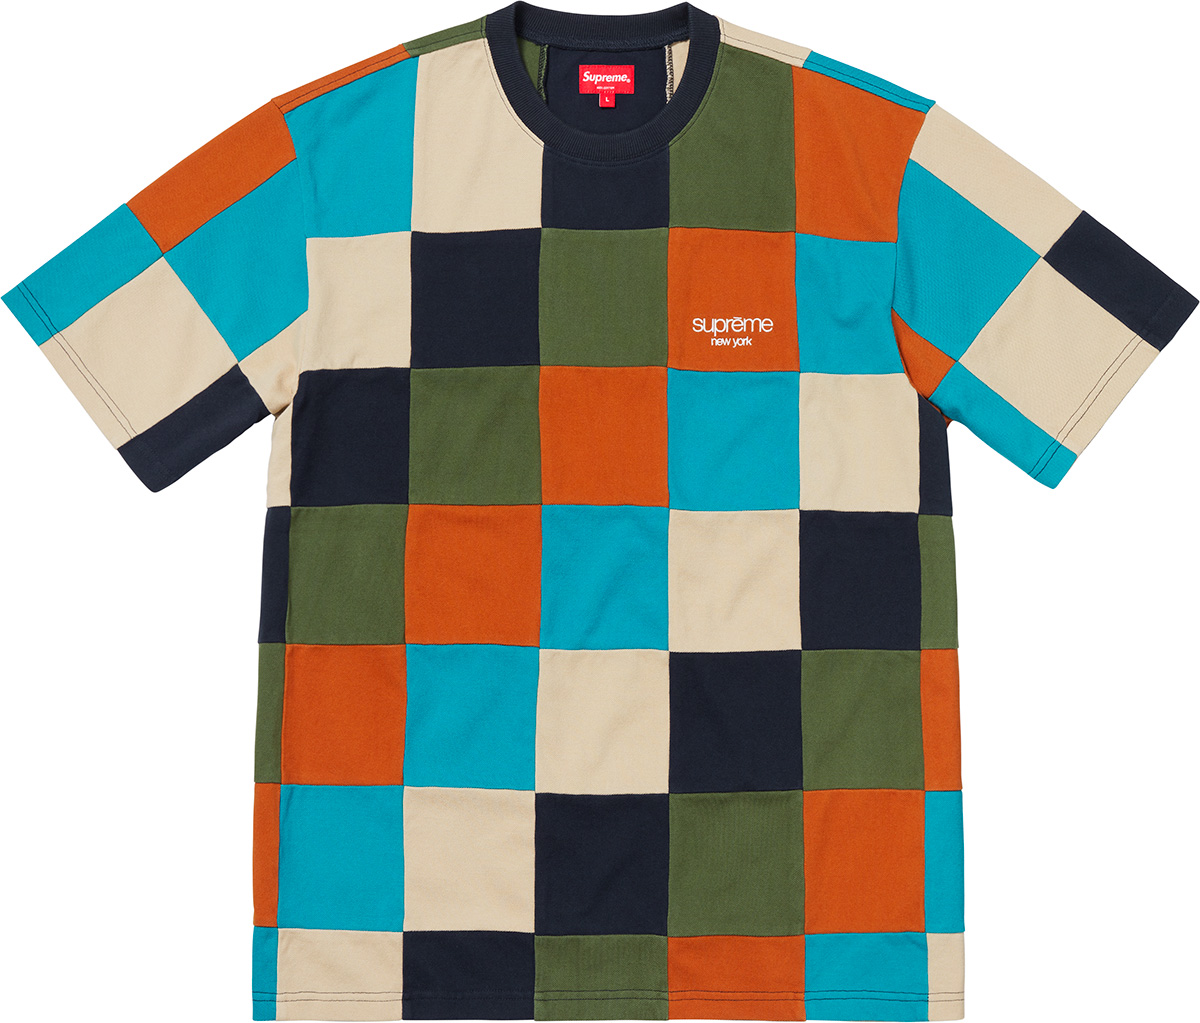 supreme-18aw-fall-winter-patchwork-pique-tee